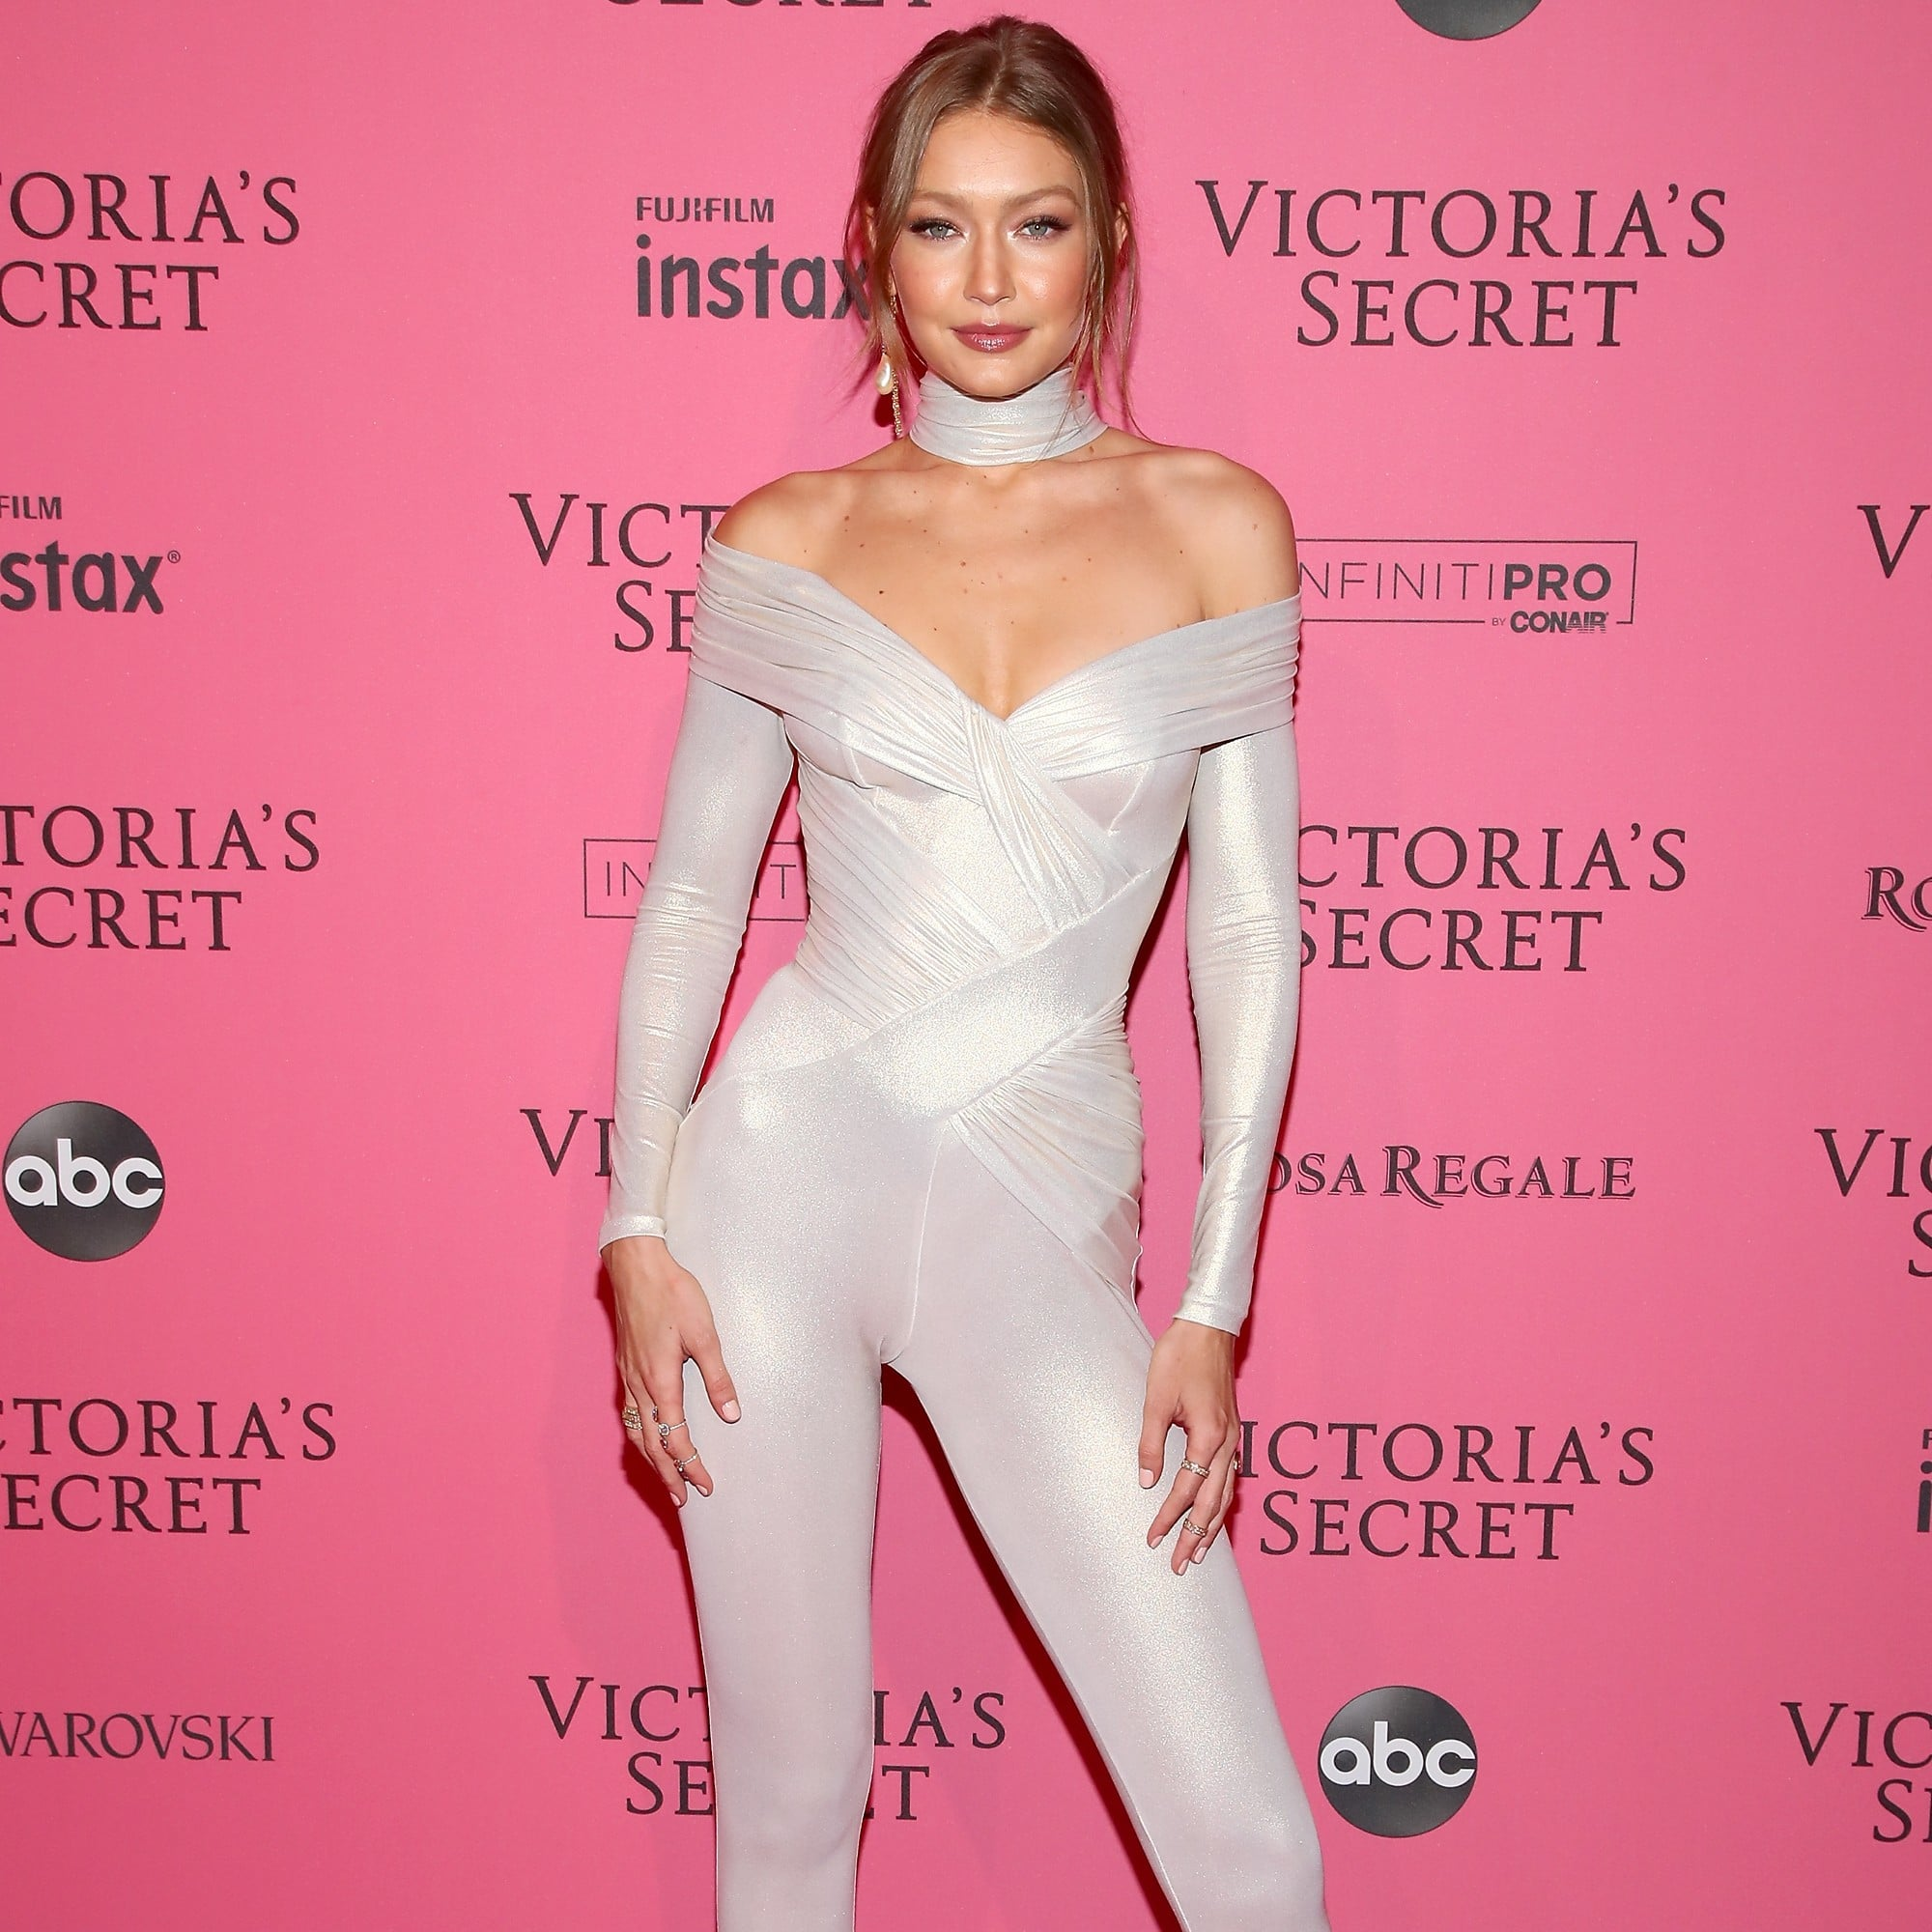 a112e576091 Gigi Hadid Catsuit at the 2018 Victoria s Secret After Party ...